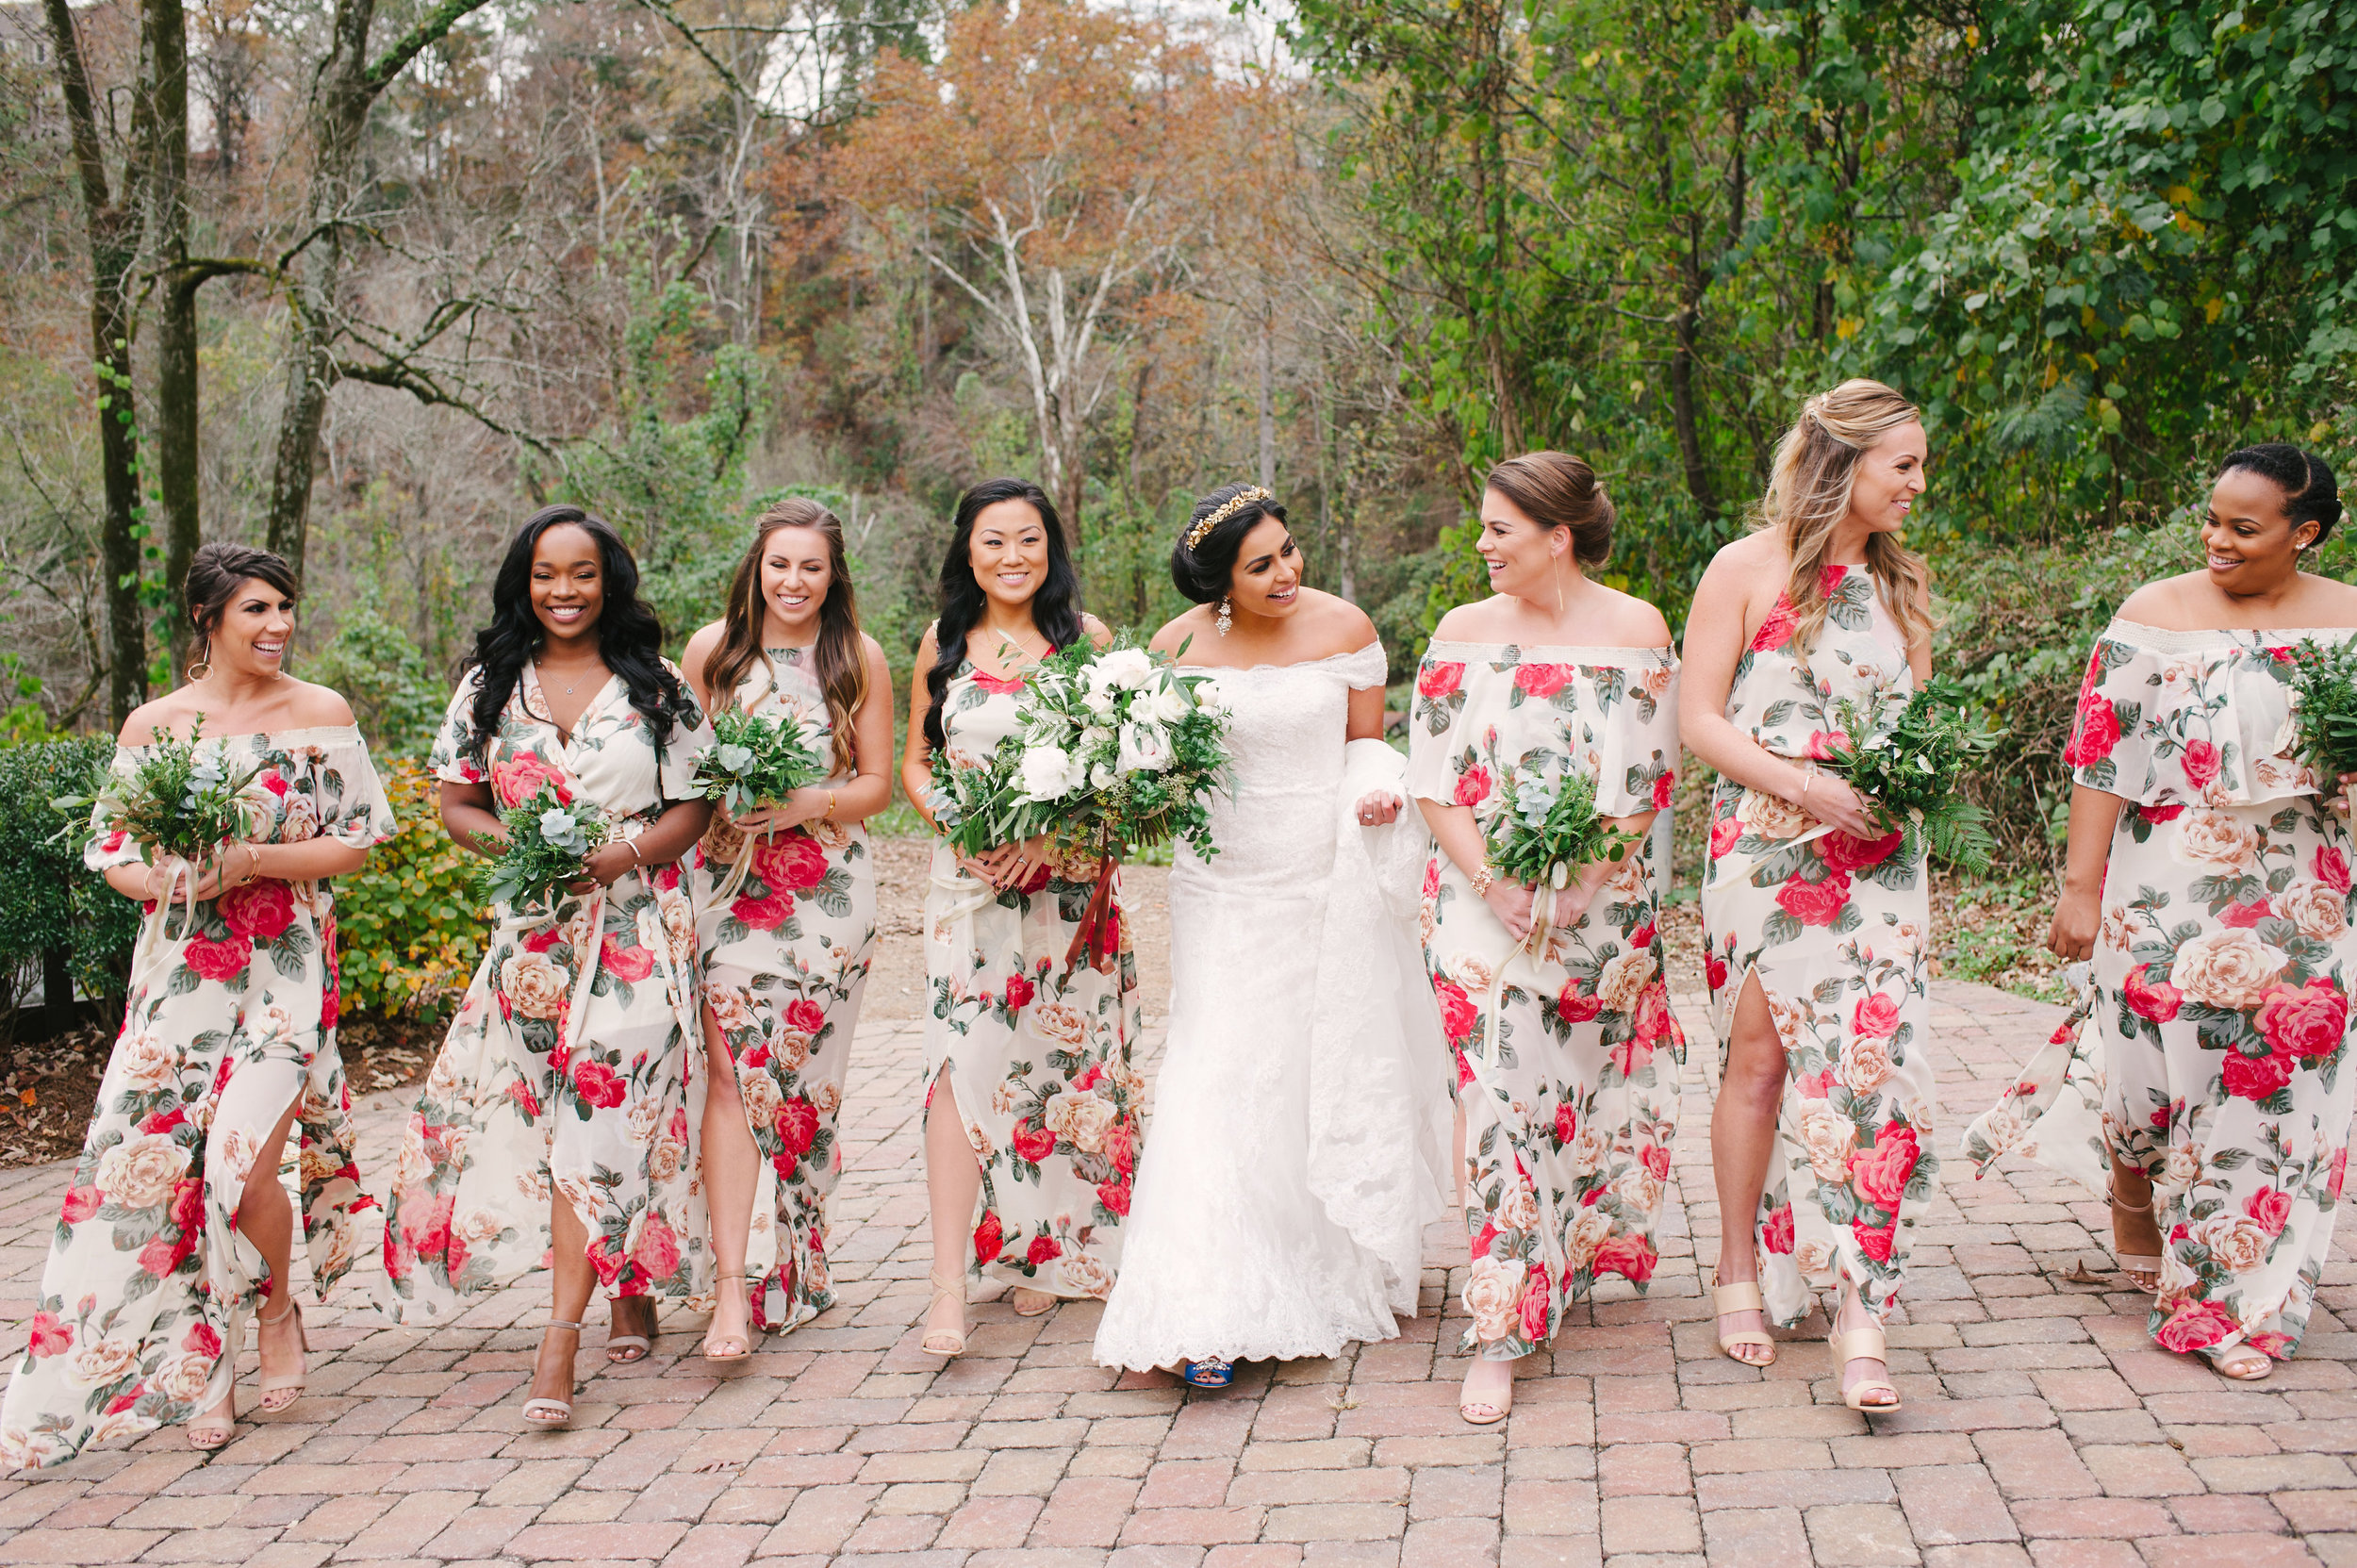 I love how flowy the dresses are, and styles are awesome too with just the right height for the slits up the sides ;) Hair by Renee Locher Makeup and Hair.